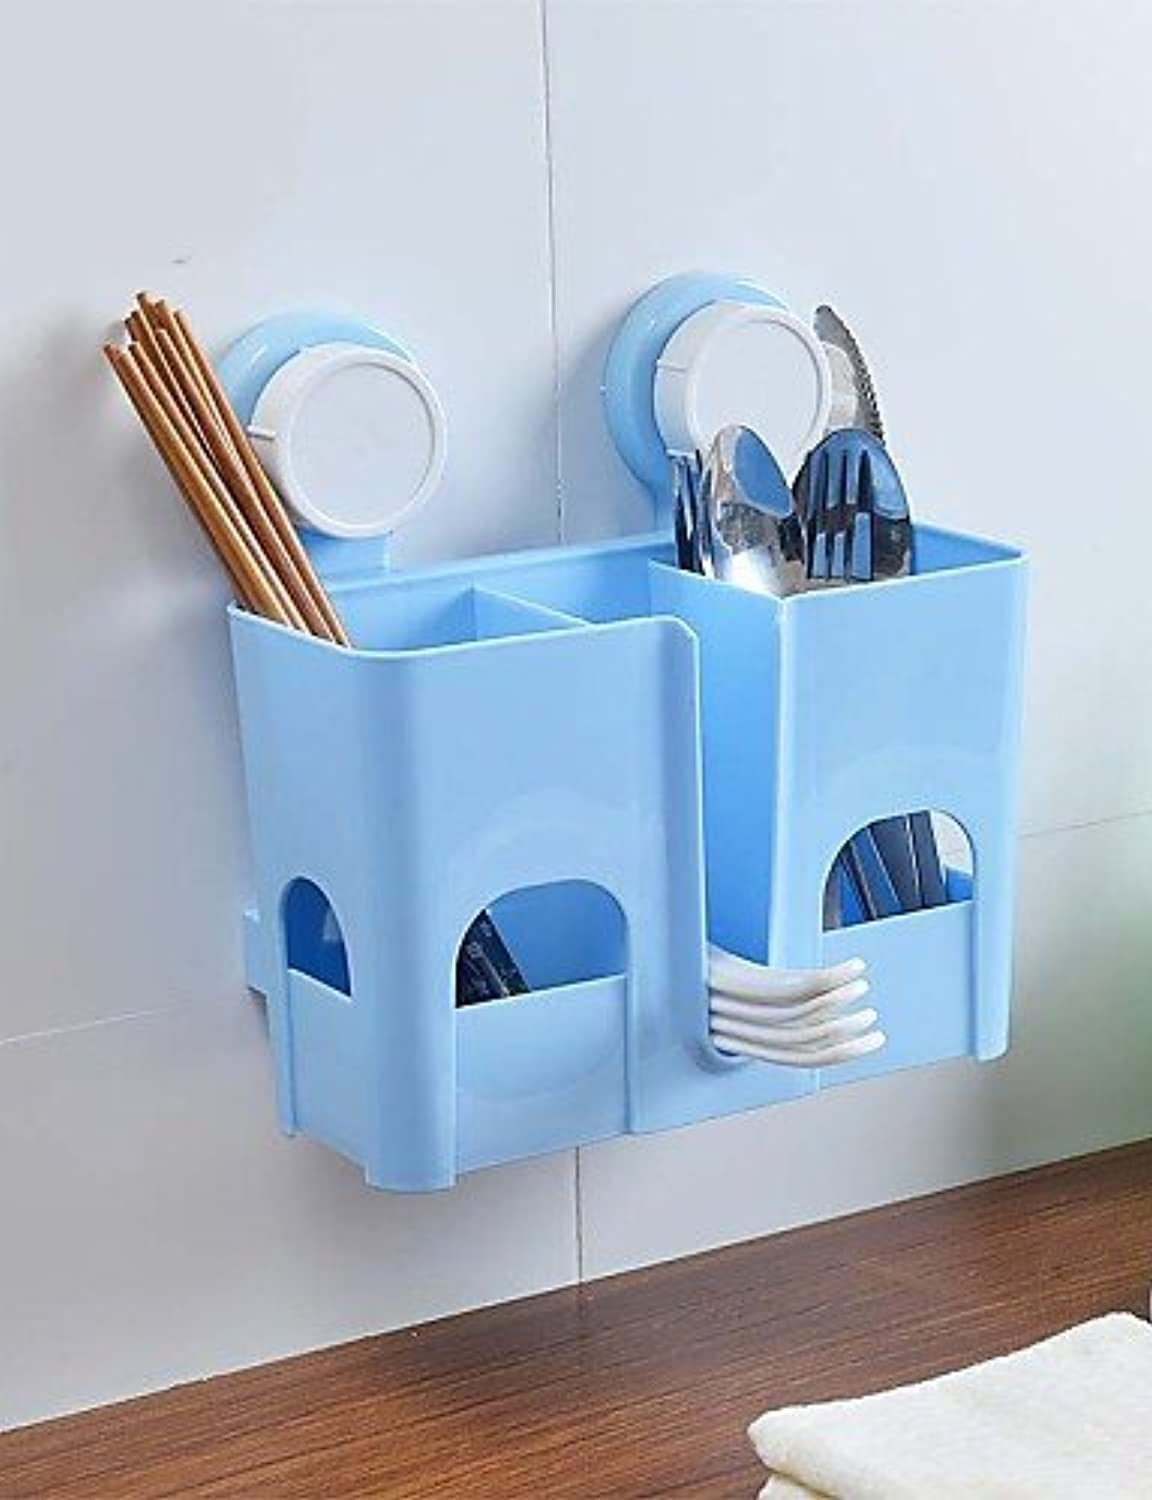 KHSKX Colourful Strong Sucked Type PP Bathroom Or Kitchen Basket , bluee